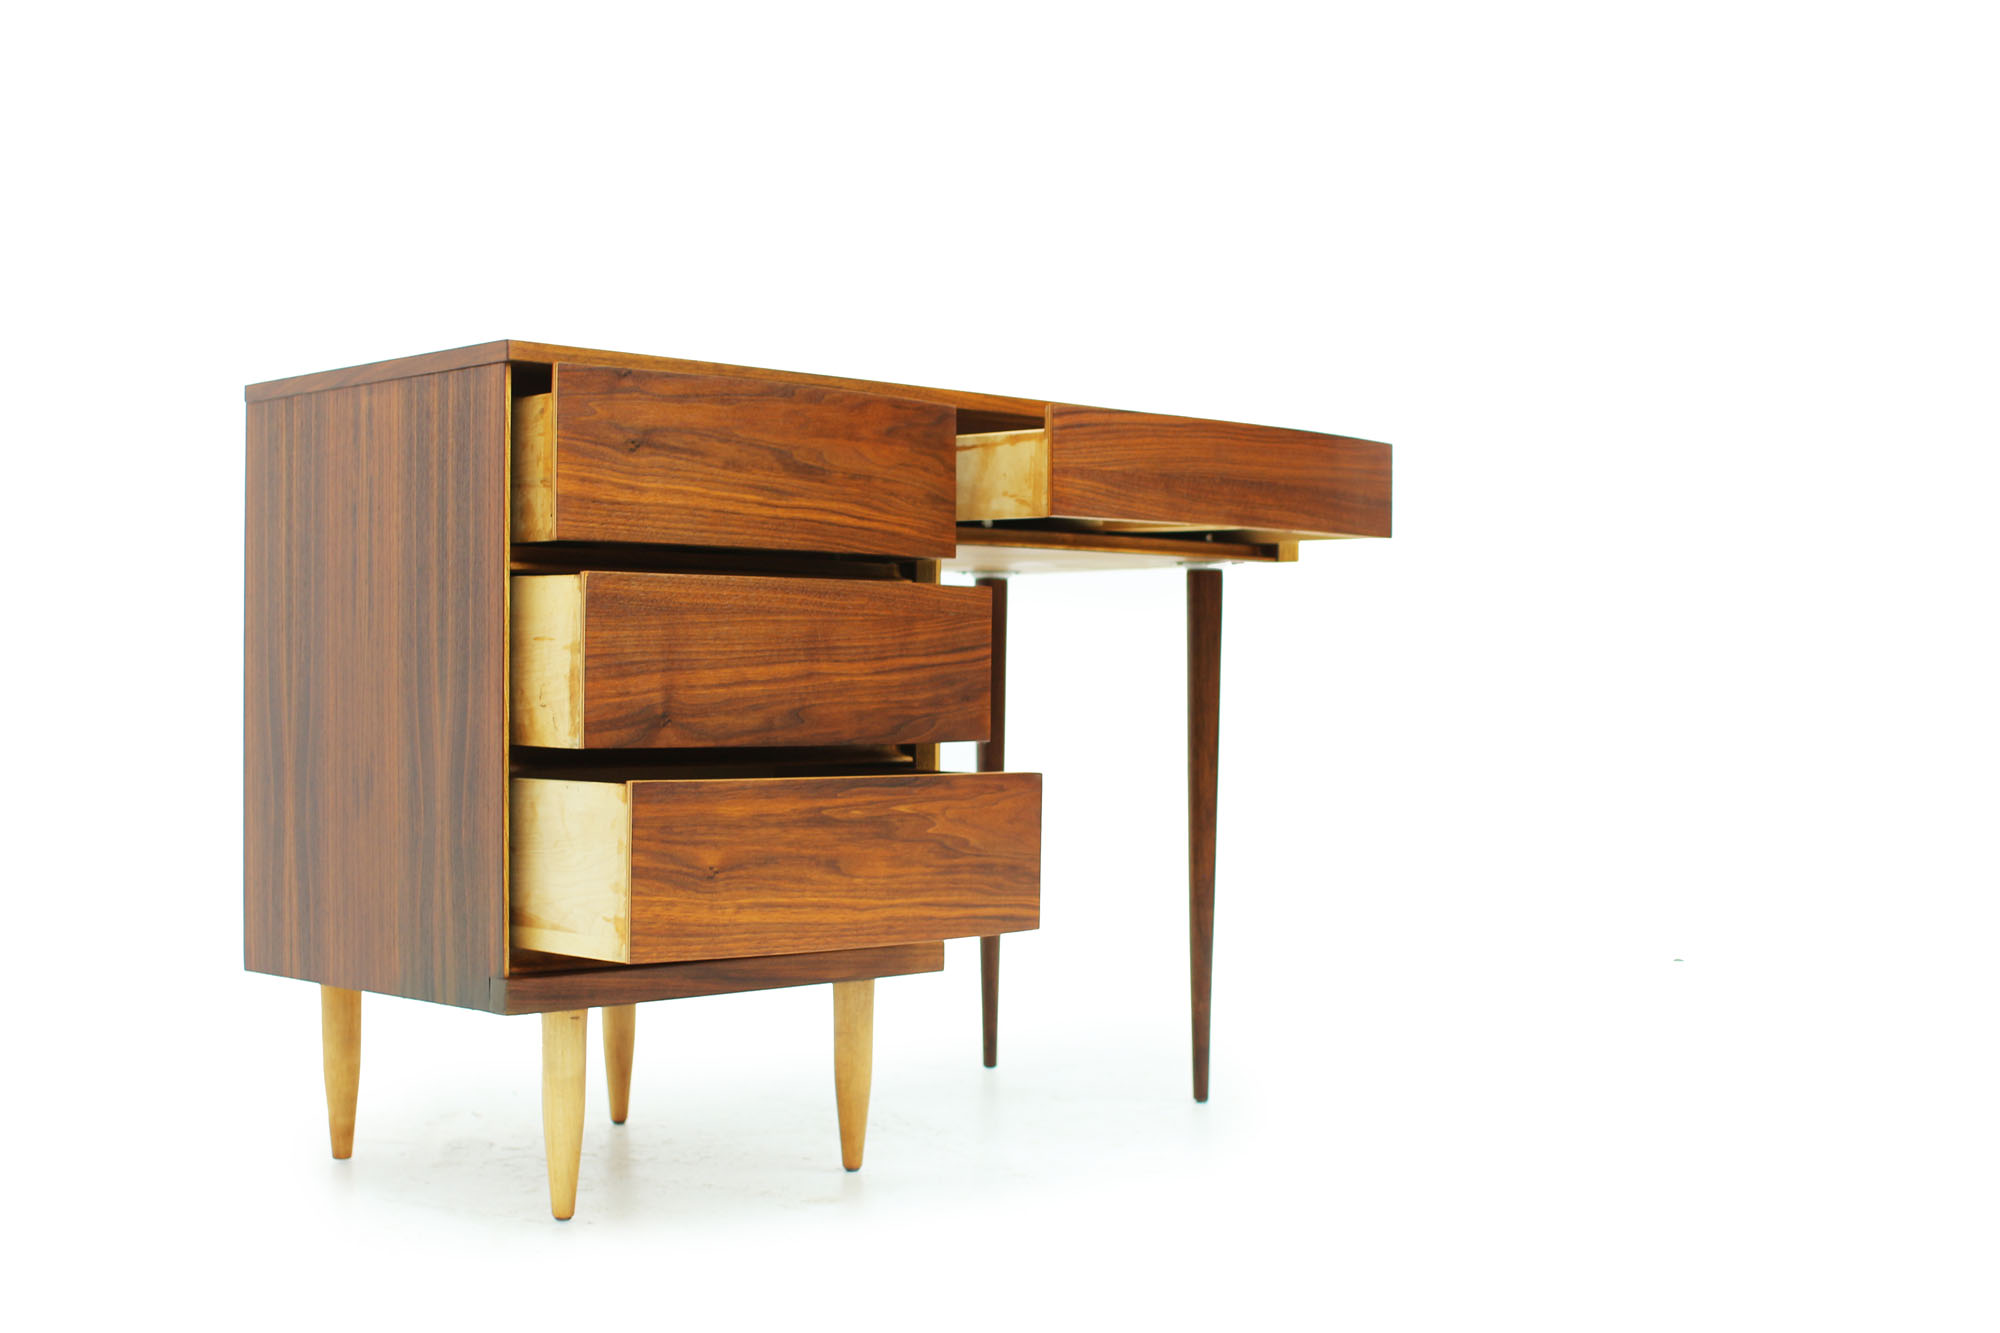 MCM Walnut Desk with Curved Drawers and long Legs (1).jpg